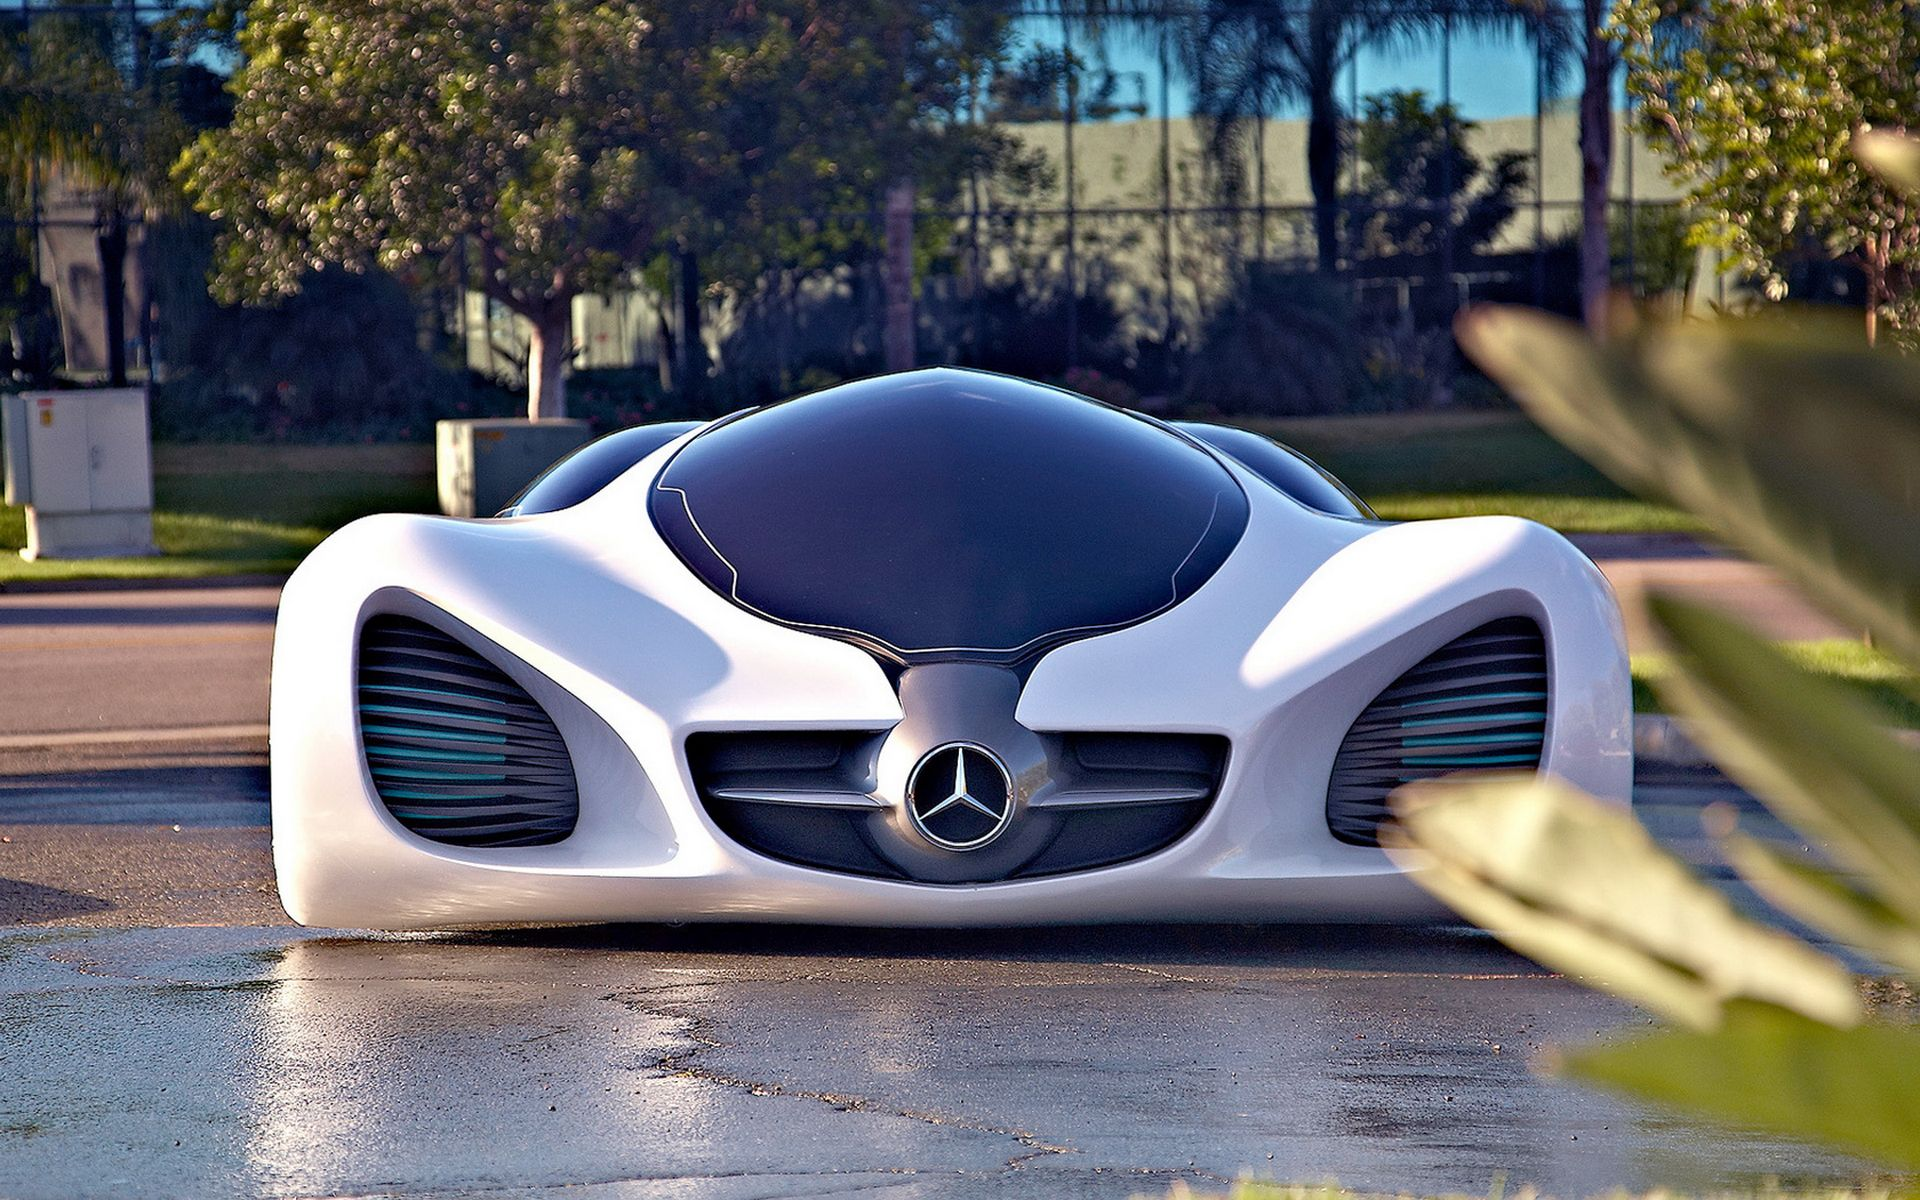 MercedesBenz Biome Concept Car Do You Like This Cool Car Have A - Look at cool cars